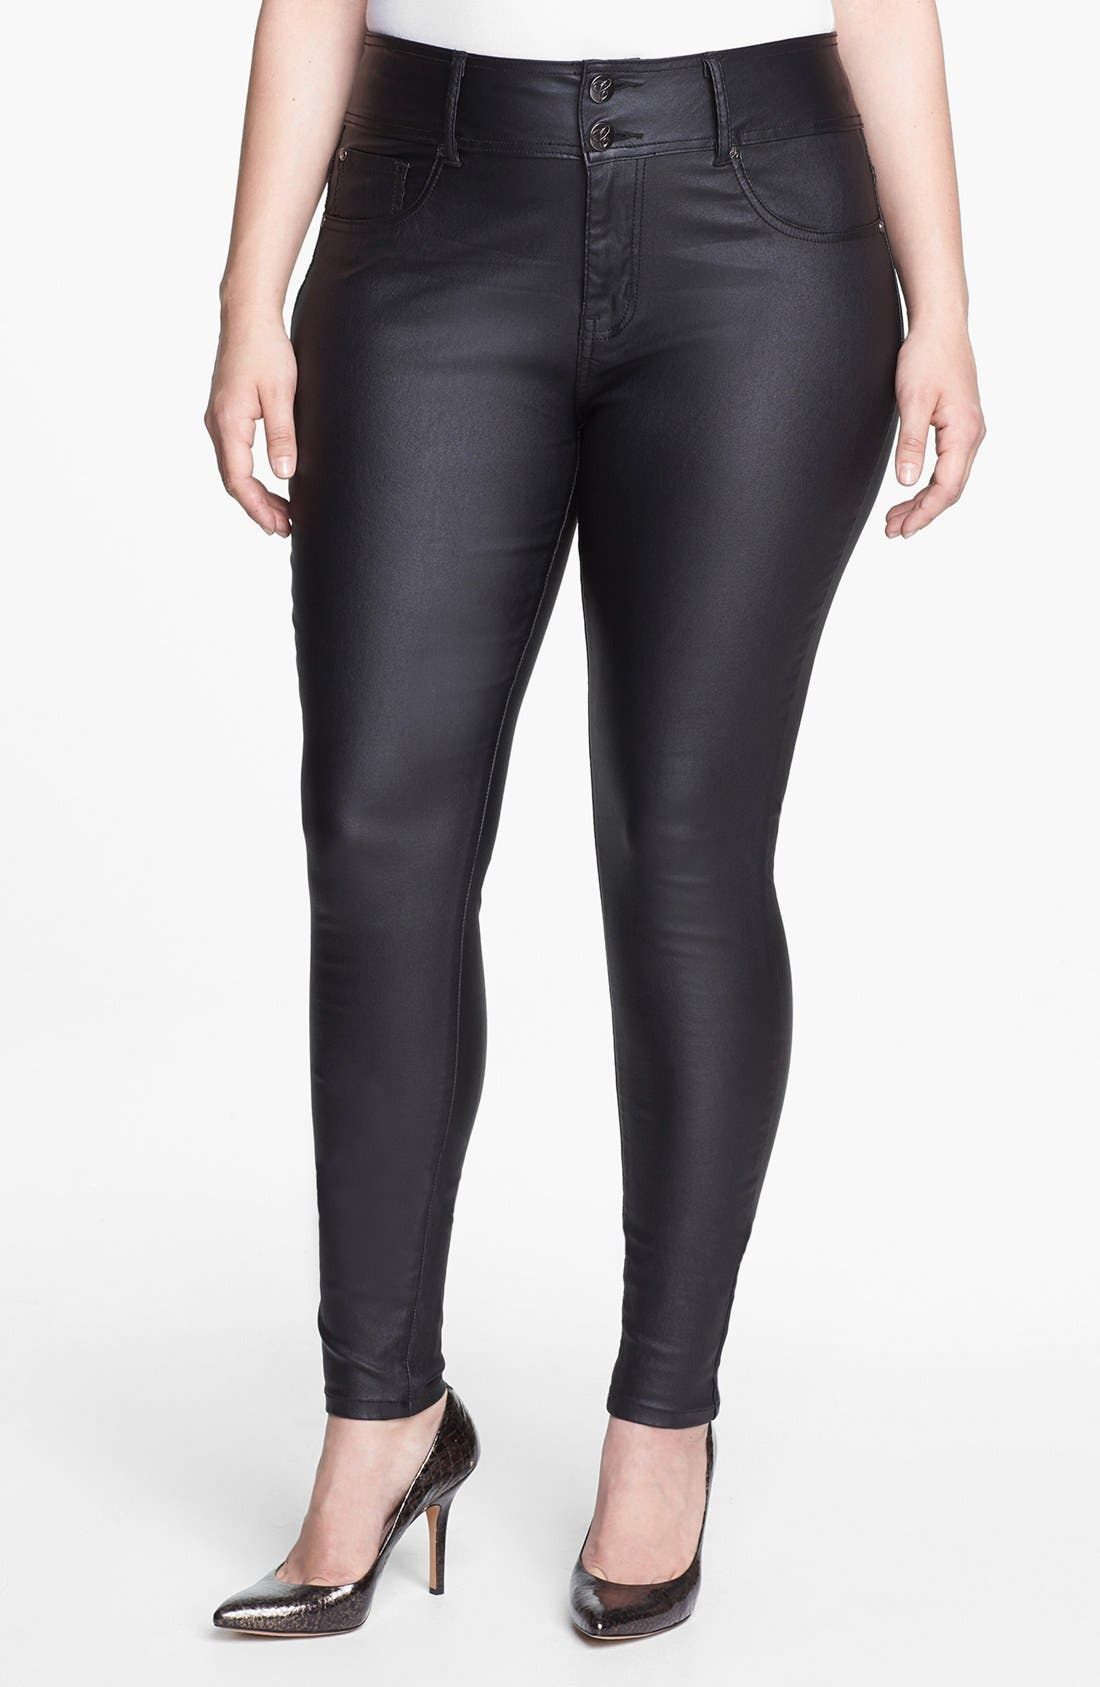 Wet Look Stretch Skinny Jeans,                         Main,                         color, 001